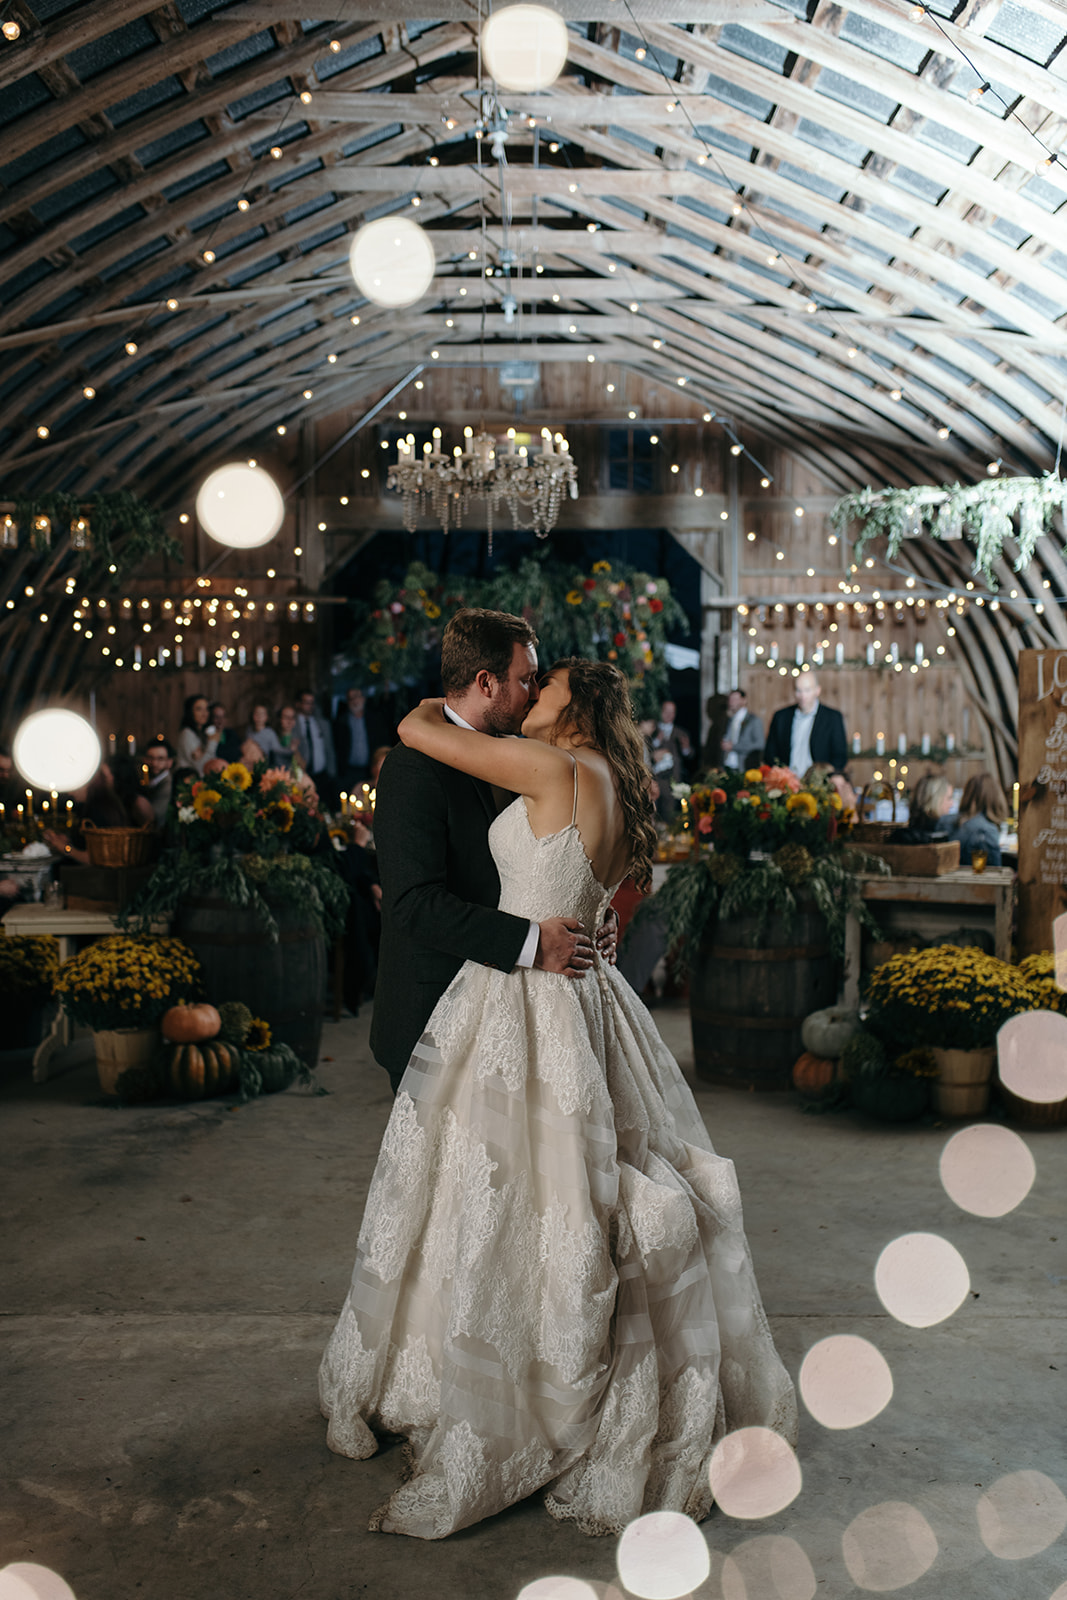 Bride and groom first dance at the barn wellman iowa wedding venue under string lights